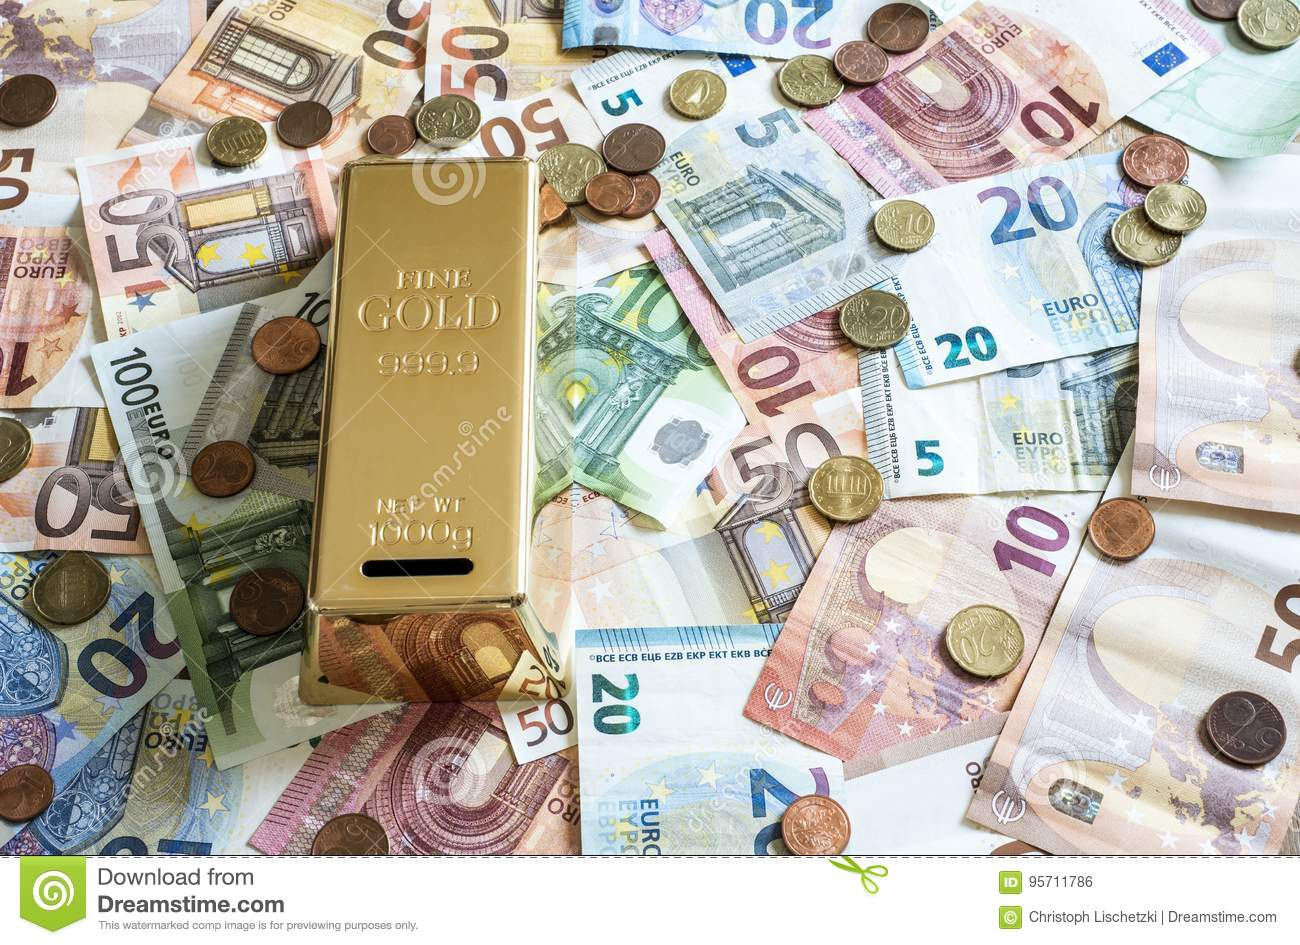 Savings Cash money concept euro banknotes all sizes and cent coins on desk piggy bank gold bar shape save